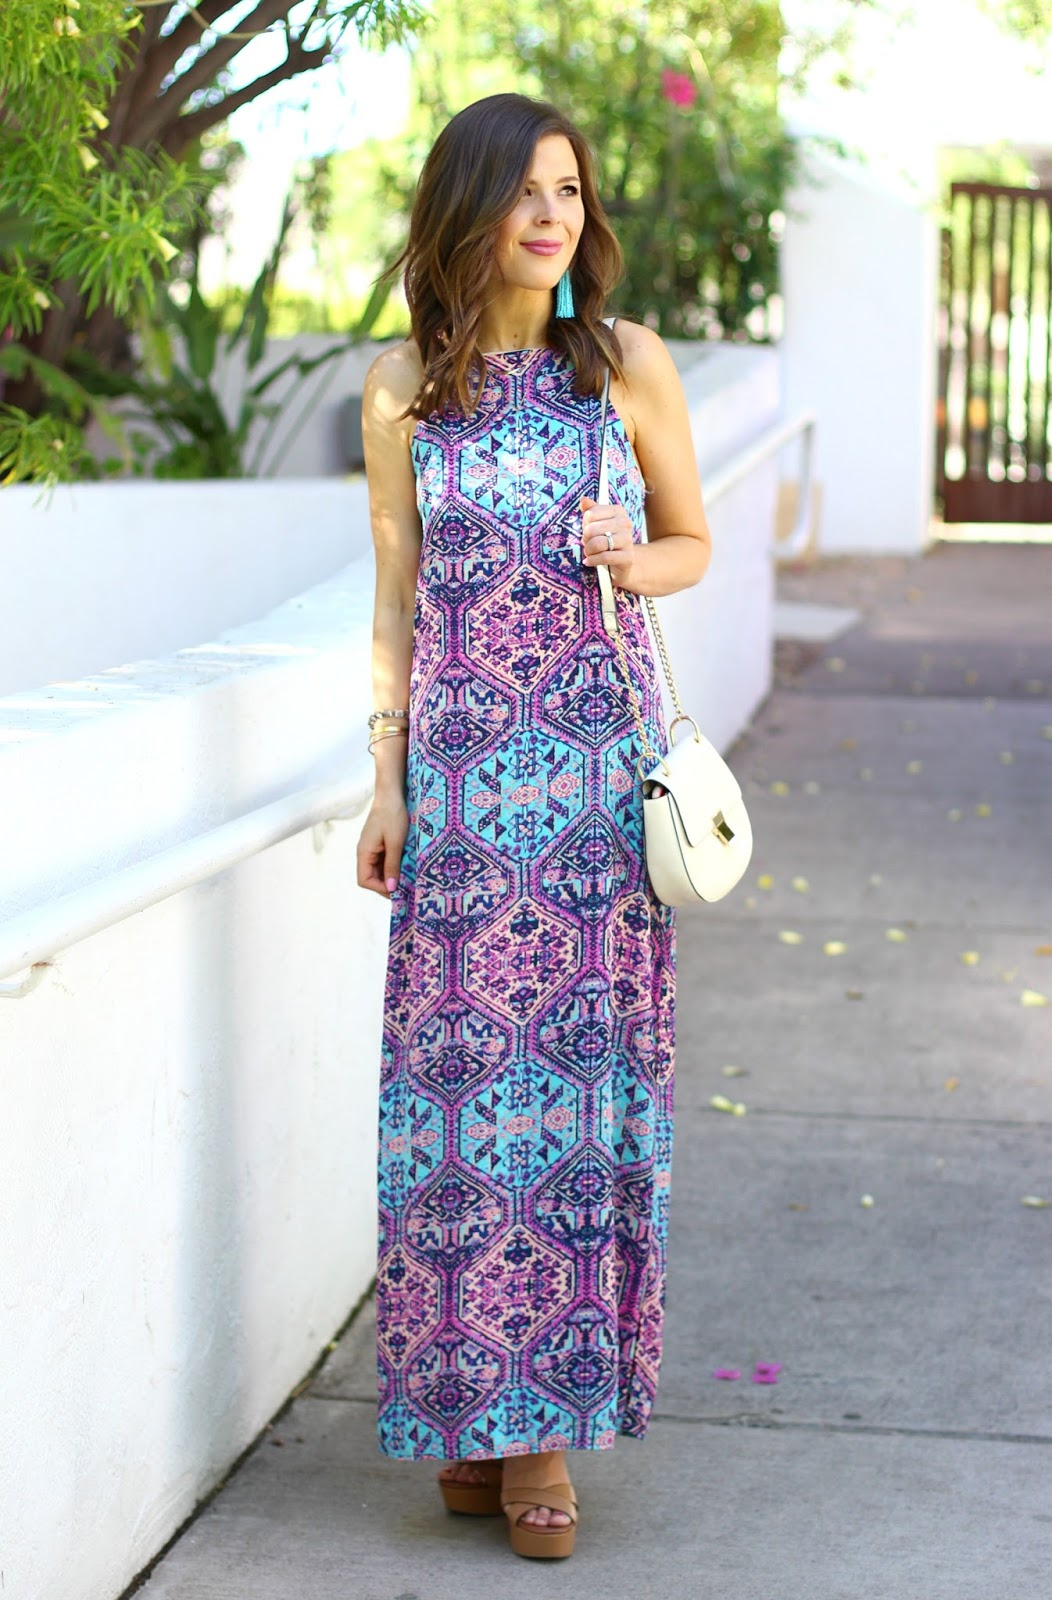 Printed Maxi Dress & Turquoise Tassels